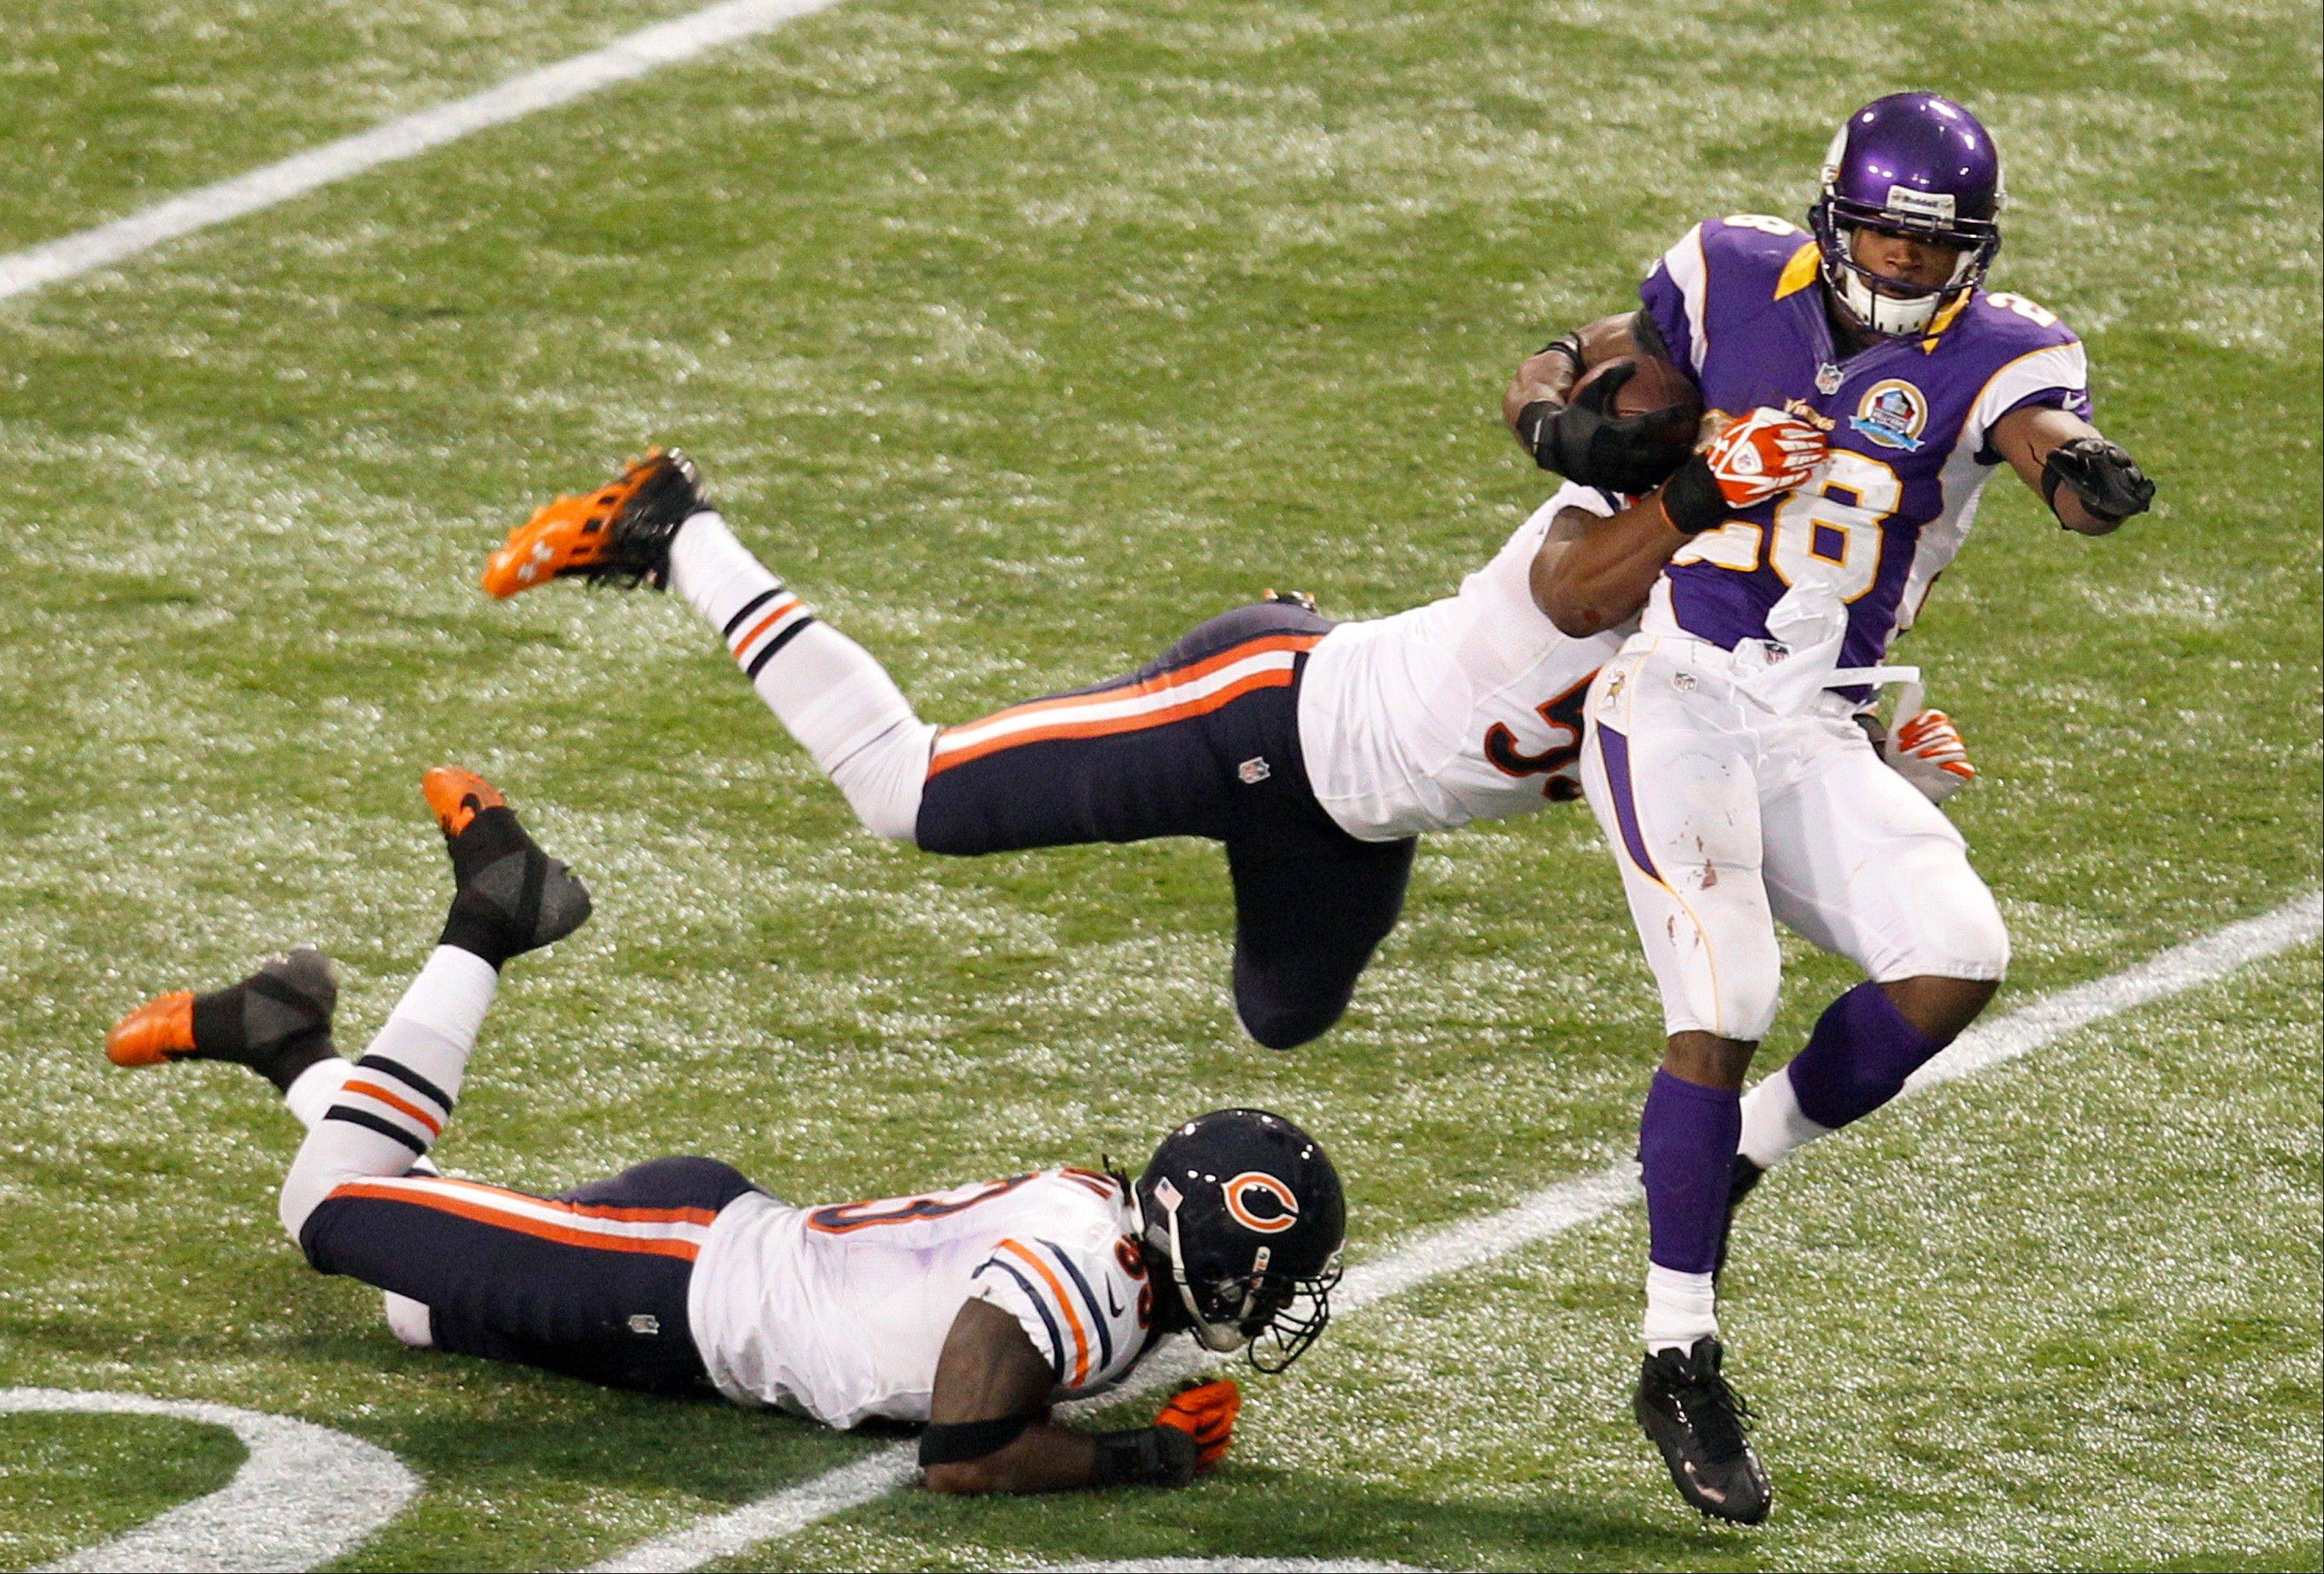 Adrian Peterson, right, tries to break a tackle by Nick Roach, center, and Charles Tillman on Sunday during the Bears' loss in Minnesota. The Vikings turned the ball over only one time and the Bears failed to turn the miscue into any points.